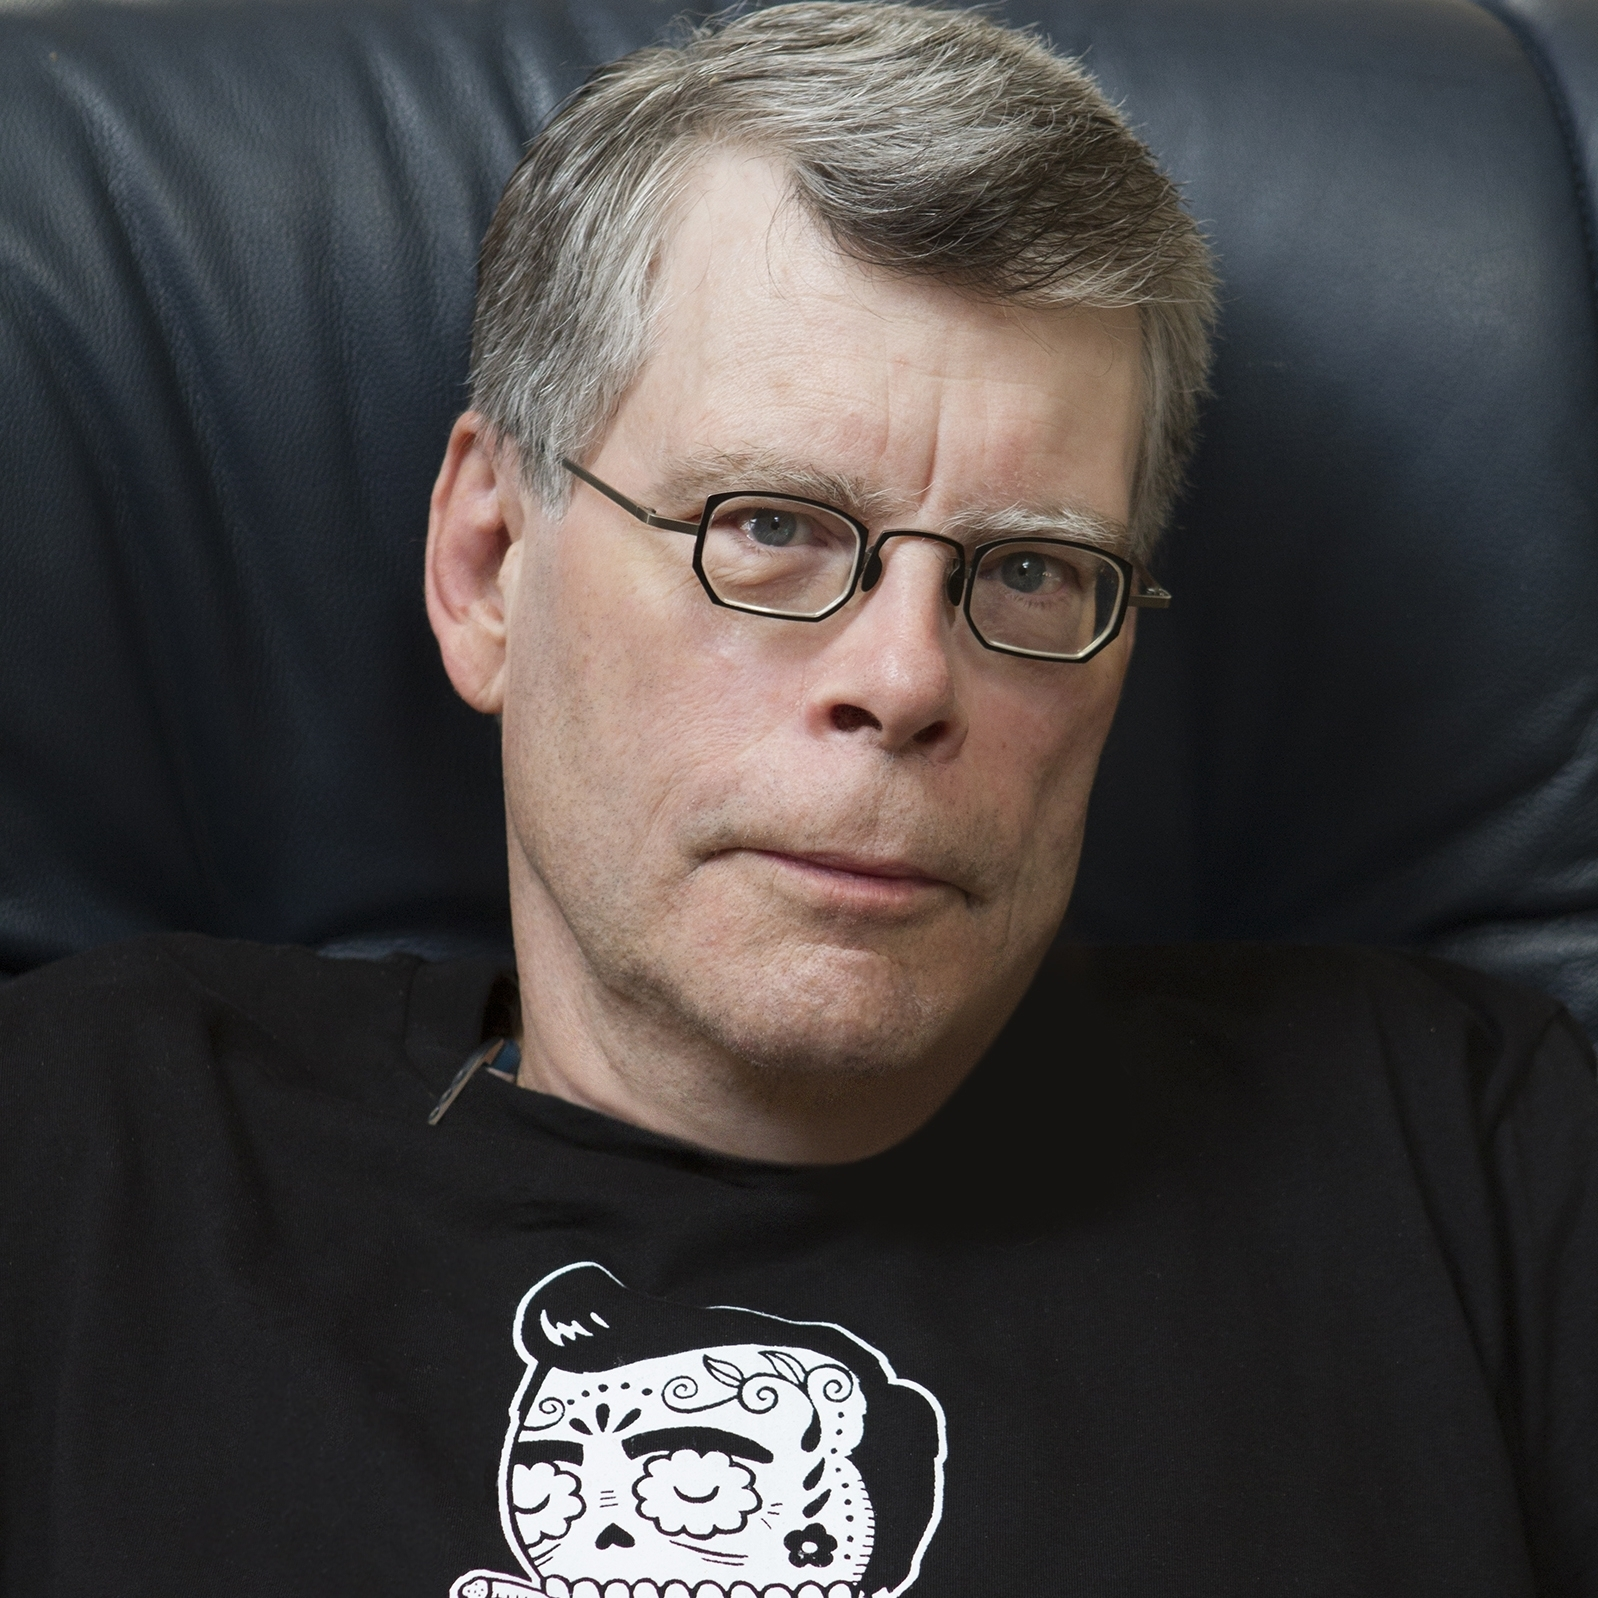 Stephen King is the best-selling author of The Shining, Carrie, and The Dark Tower series.